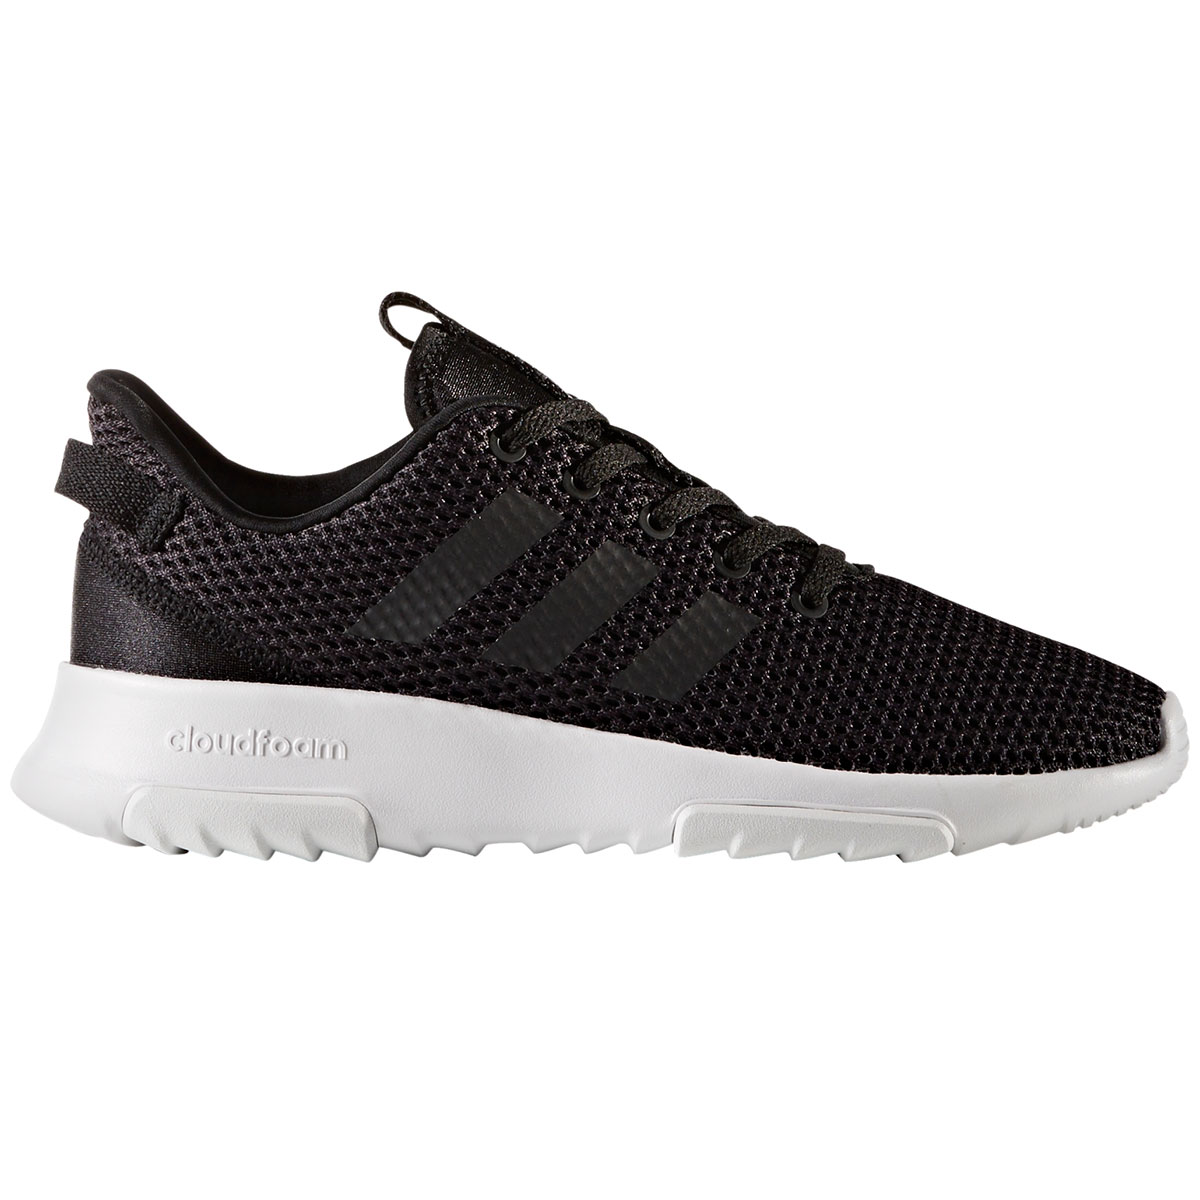 ADIDAS Boys' Neo Cloudfoam Racer TR Running Shoes, Black/White